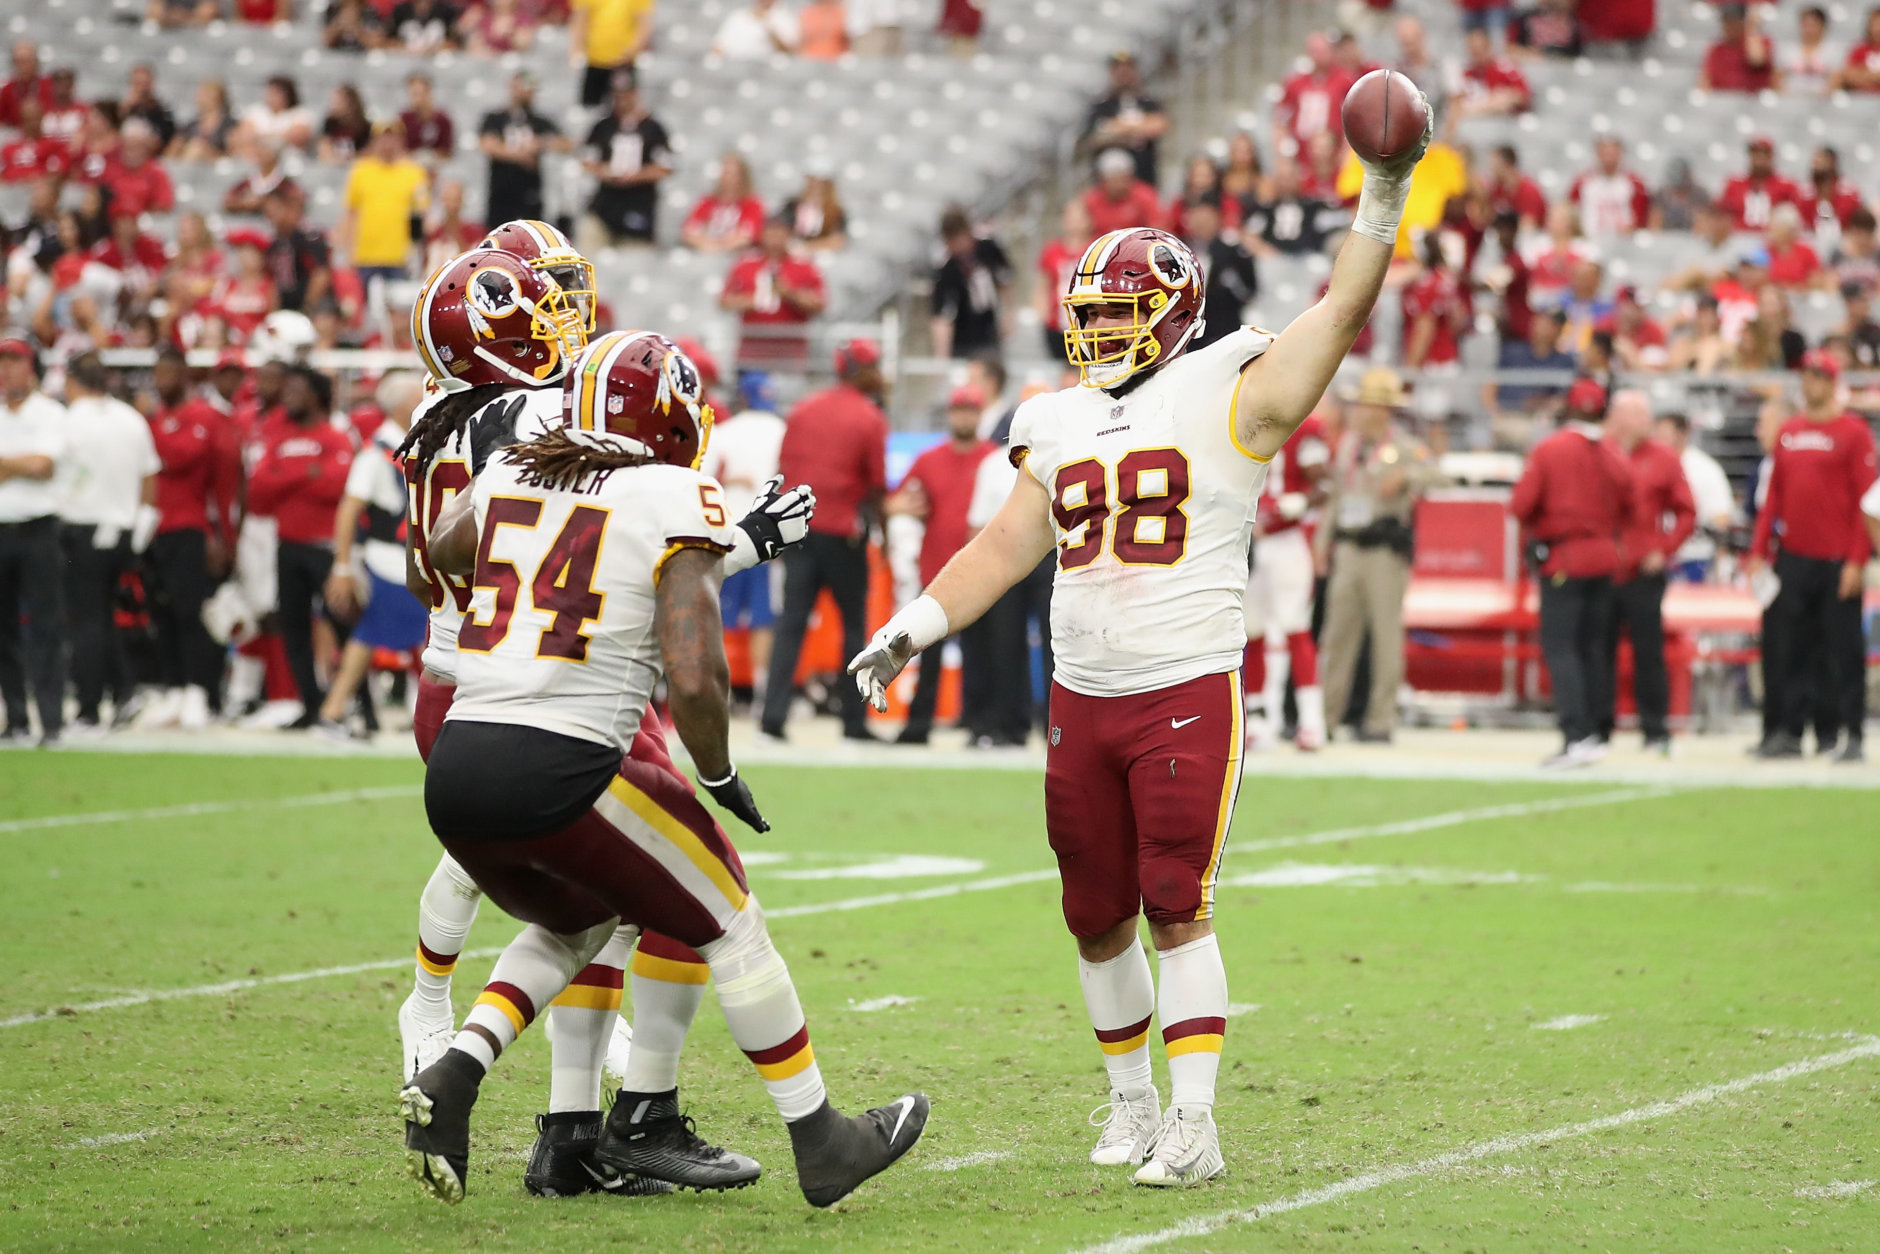 GLENDALE, AZ - SEPTEMBER 09:  Defensive tackle Matthew Ioannidis #98 of the Washington Redskins celebrates with linebacker Mason Foster #54 after a turnover during the final moments of the NFL game against the Arizona Cardinals at State Farm Stadium on September 9, 2018 in Glendale, Arizona.  The Redskins defeated the Cardinals 24-6.  (Photo by Christian Petersen/Getty Images)